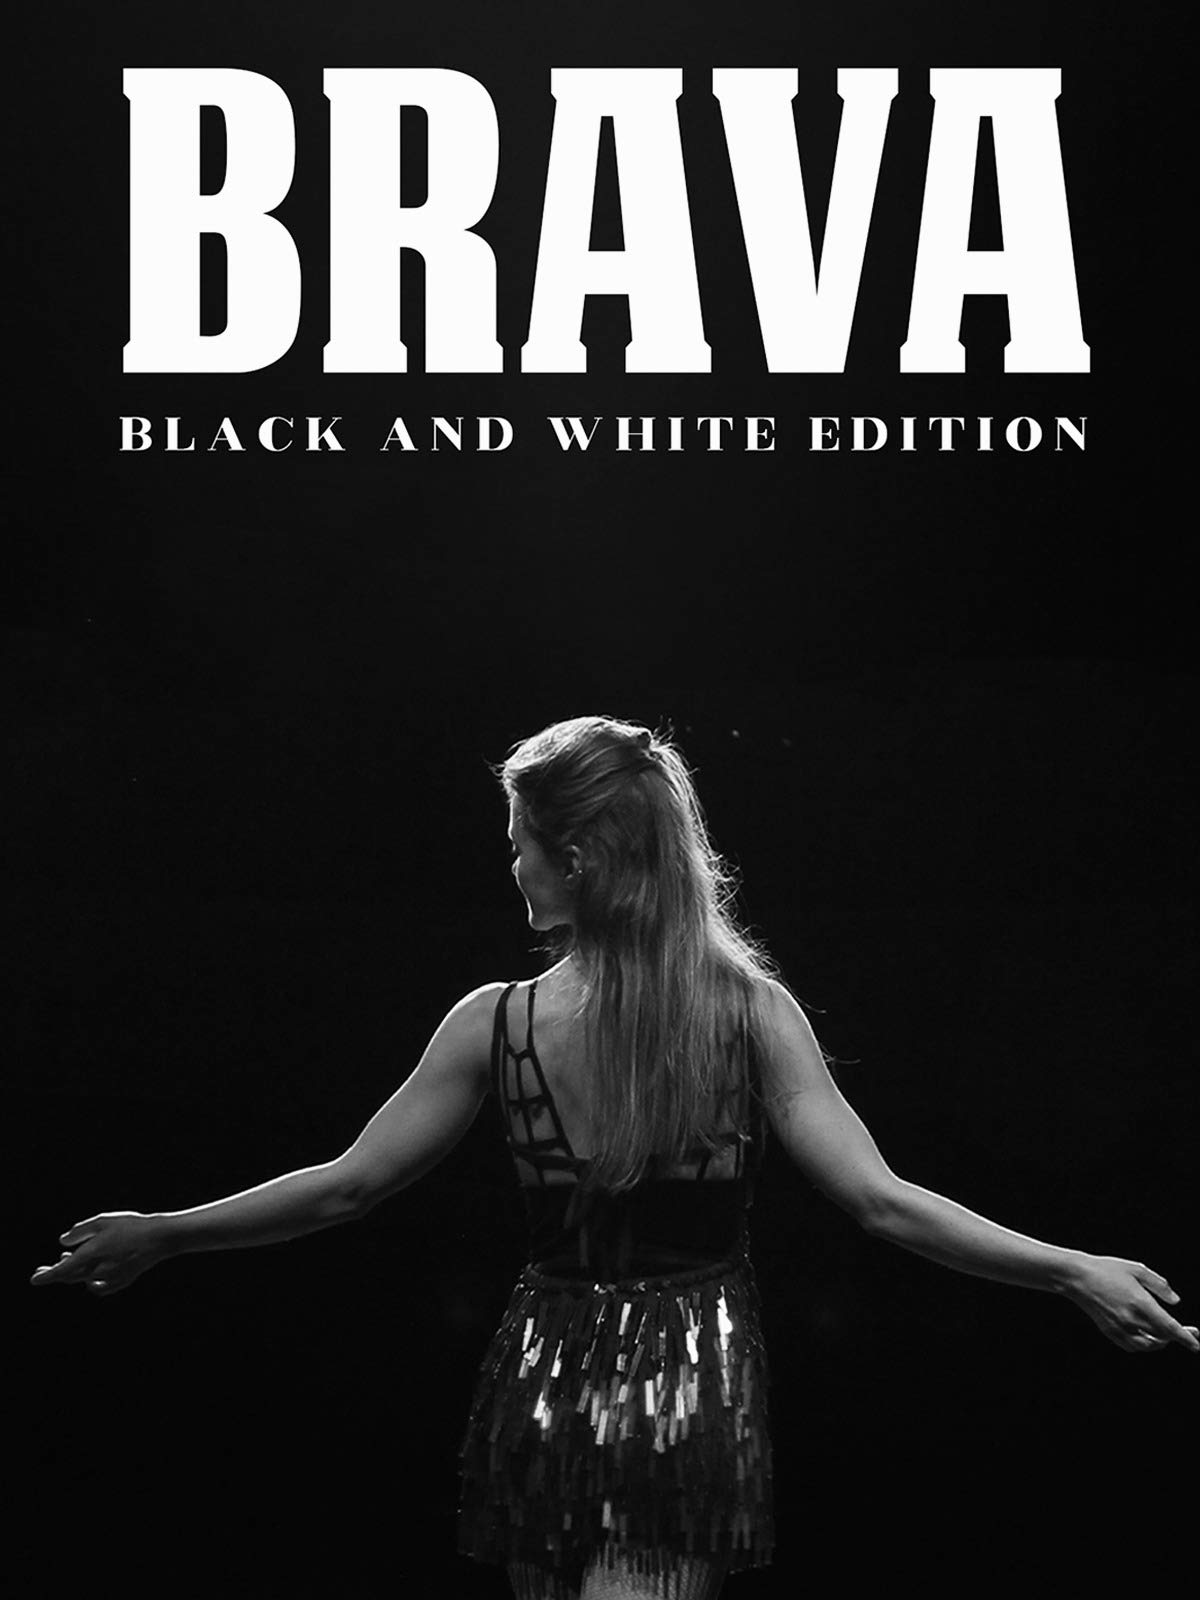 Brava (Black & White Edition)